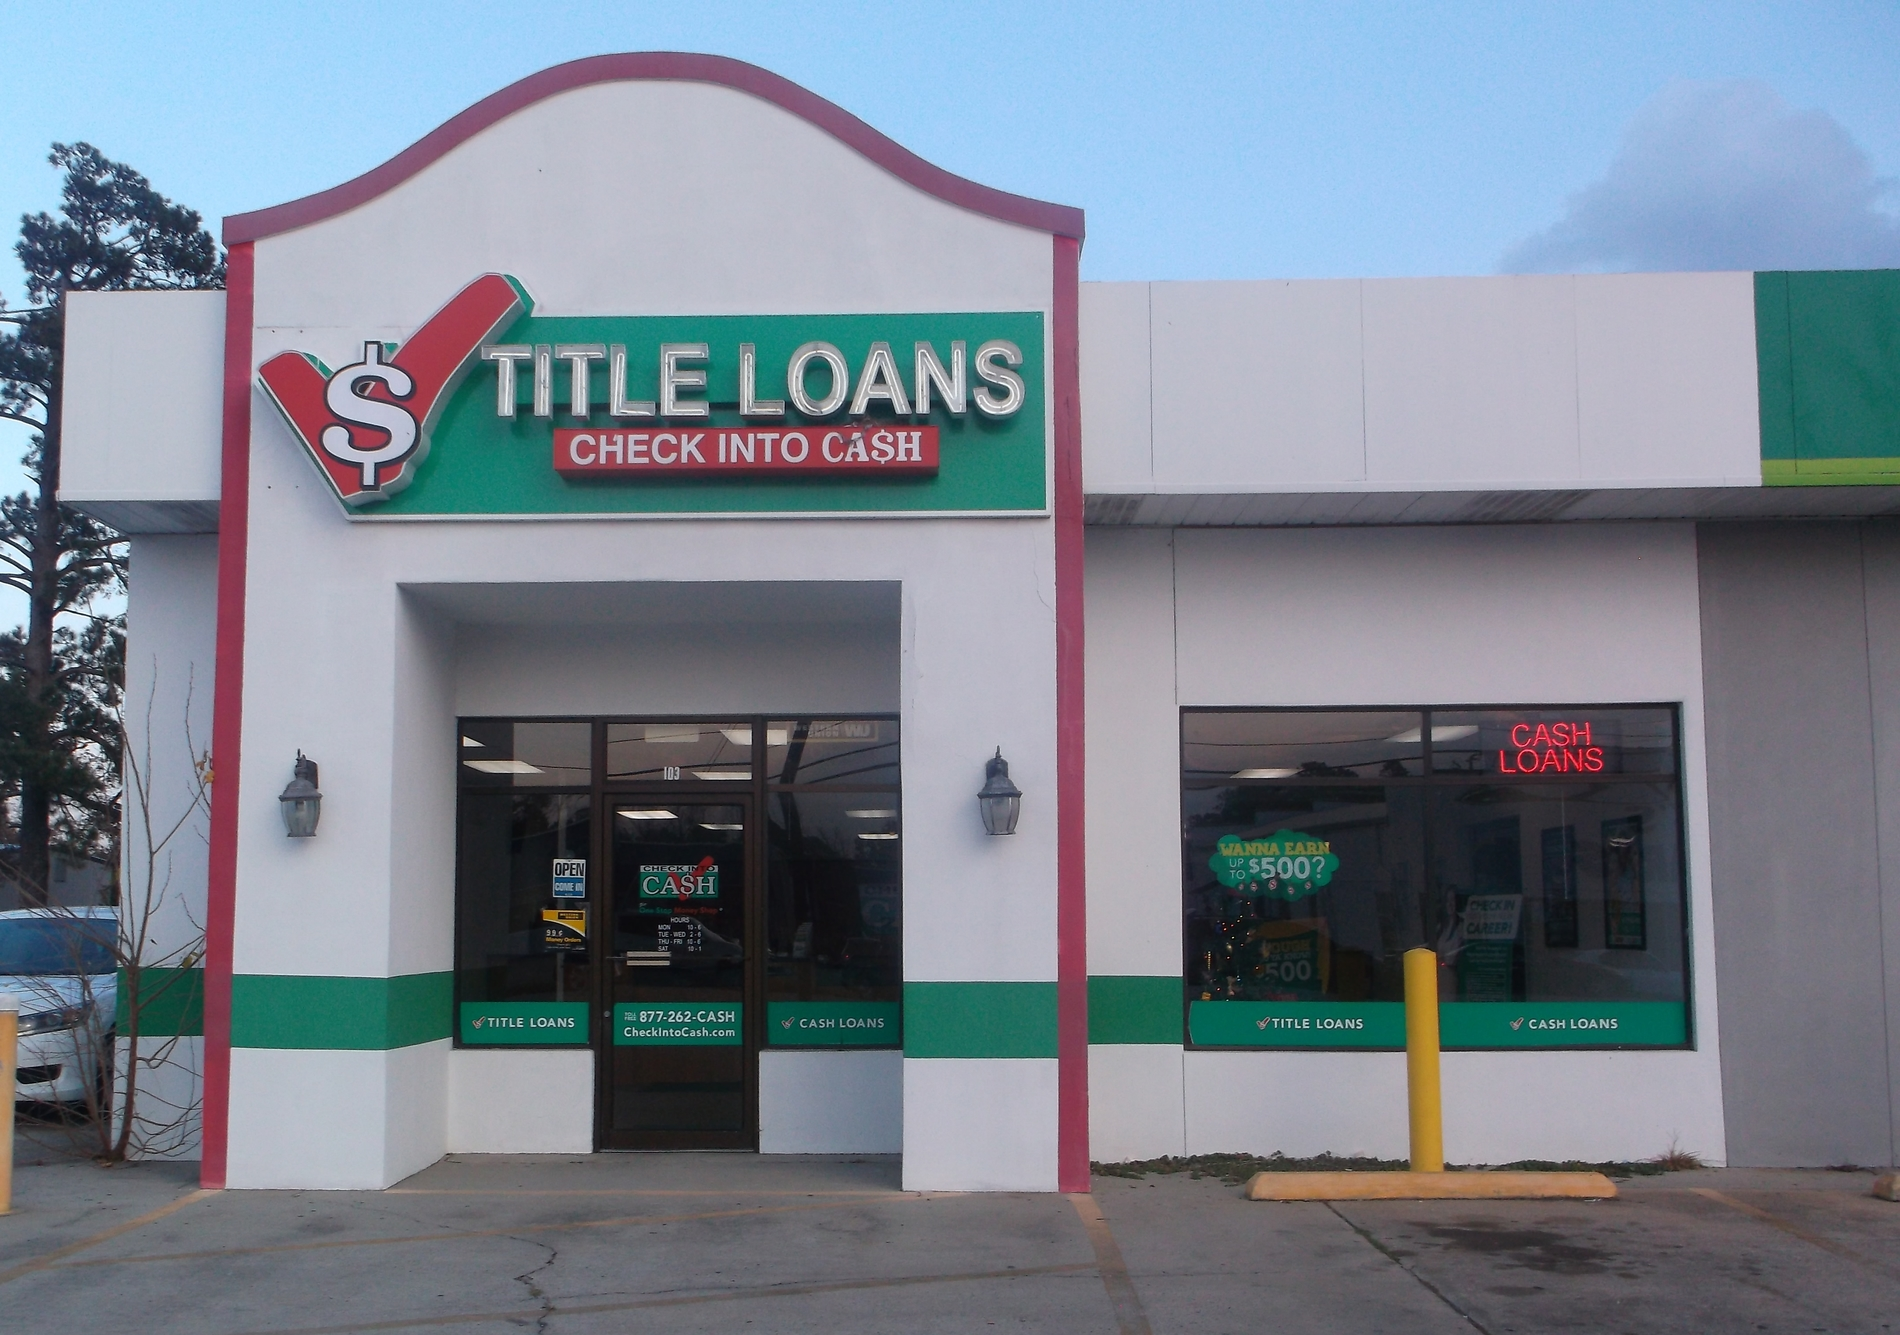 Online payday loans in kentucky image 5